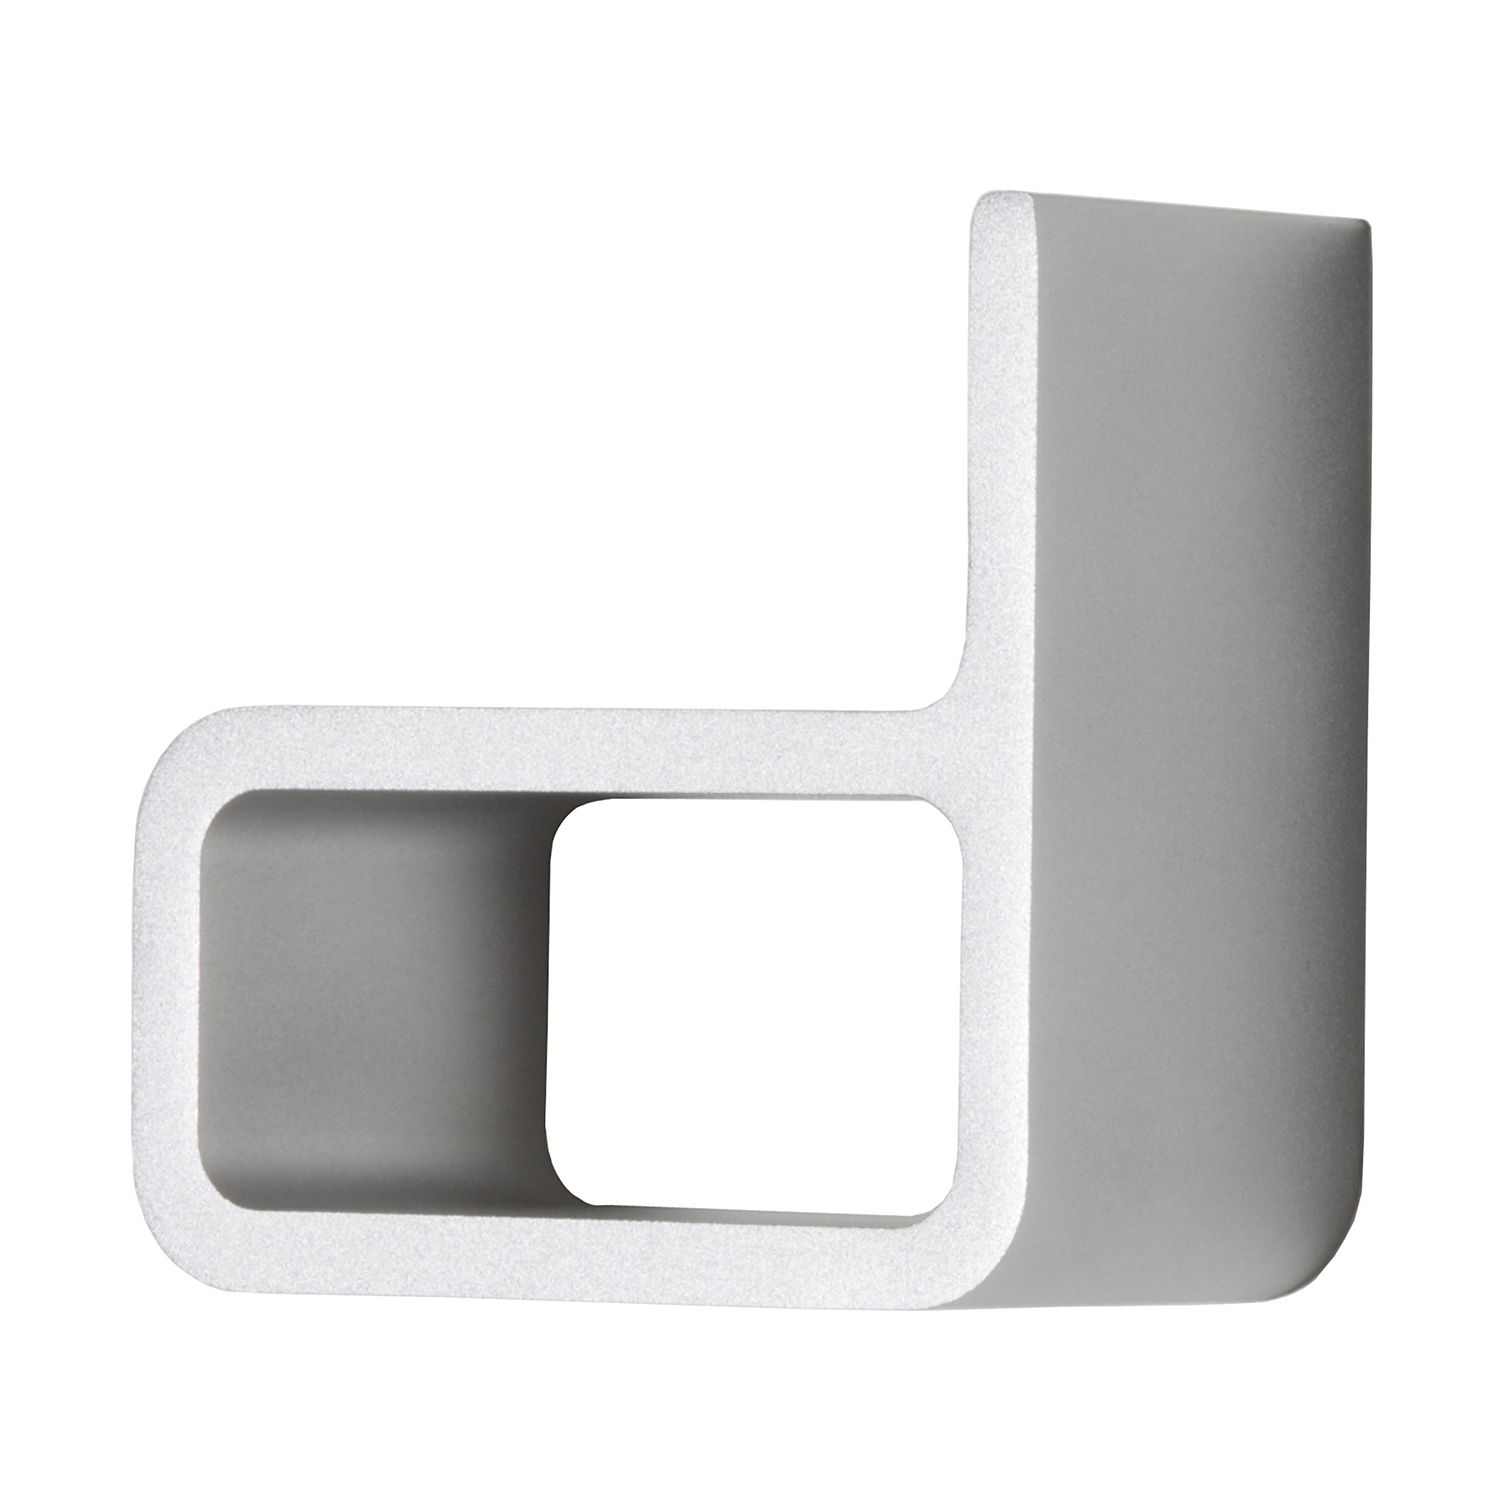 Entrance Hausnummer d - Aluminium silber, Authentics